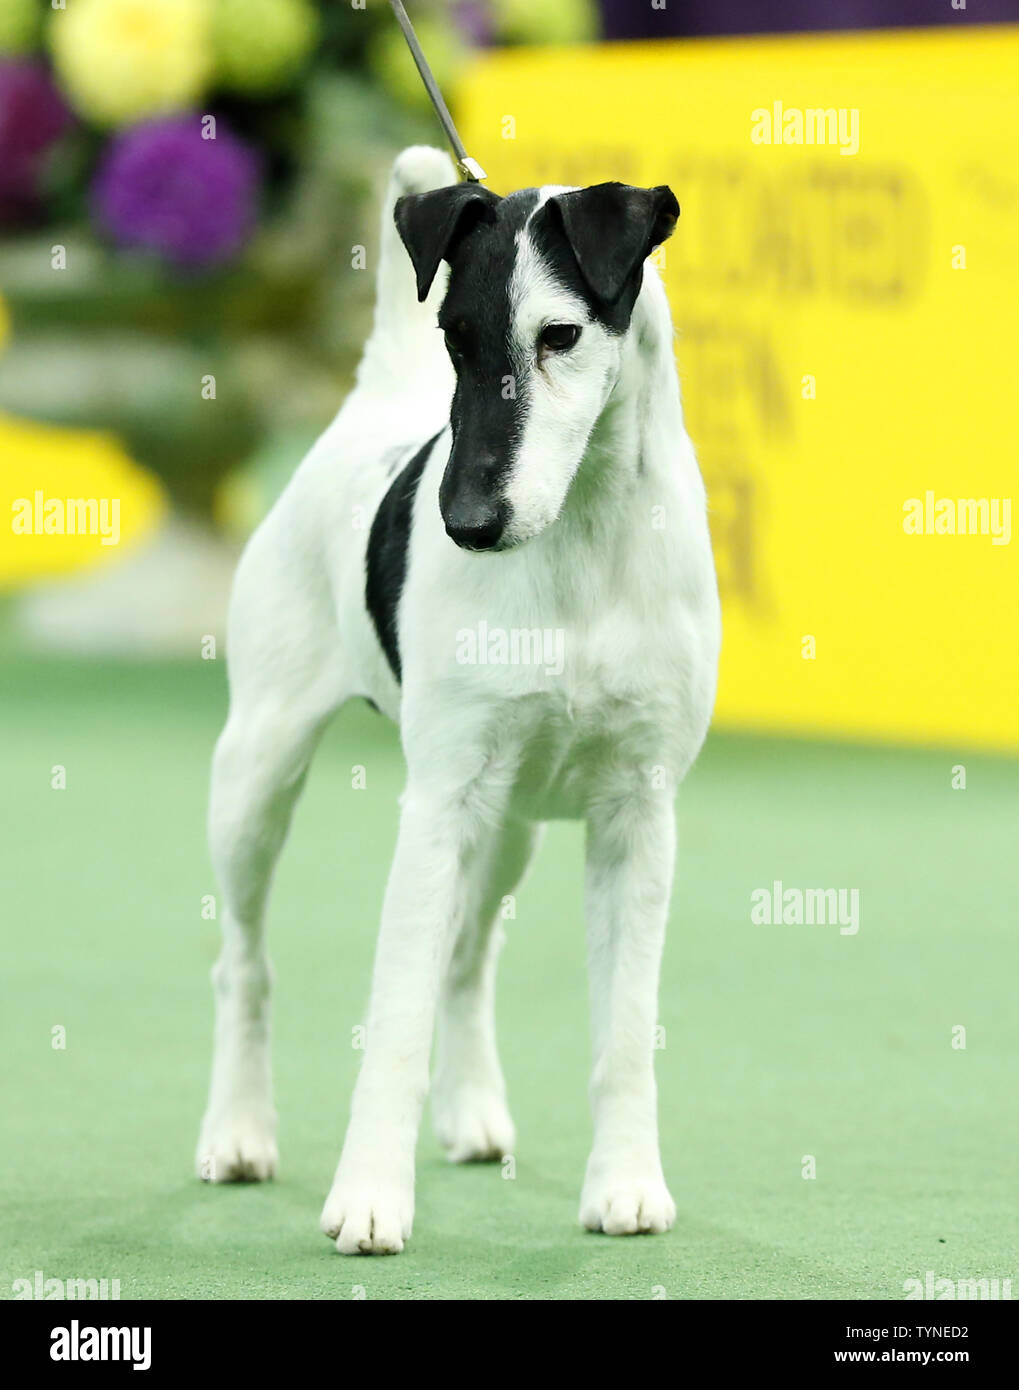 A Smooth Fox Terrier named Adam competes and wins the Terrier Group at the 137th Annual Westminster Kennel Club Dog Show at Madison Square Garden in New York City on February 12, 2013.      UPI/John Angelillo Stock Photo